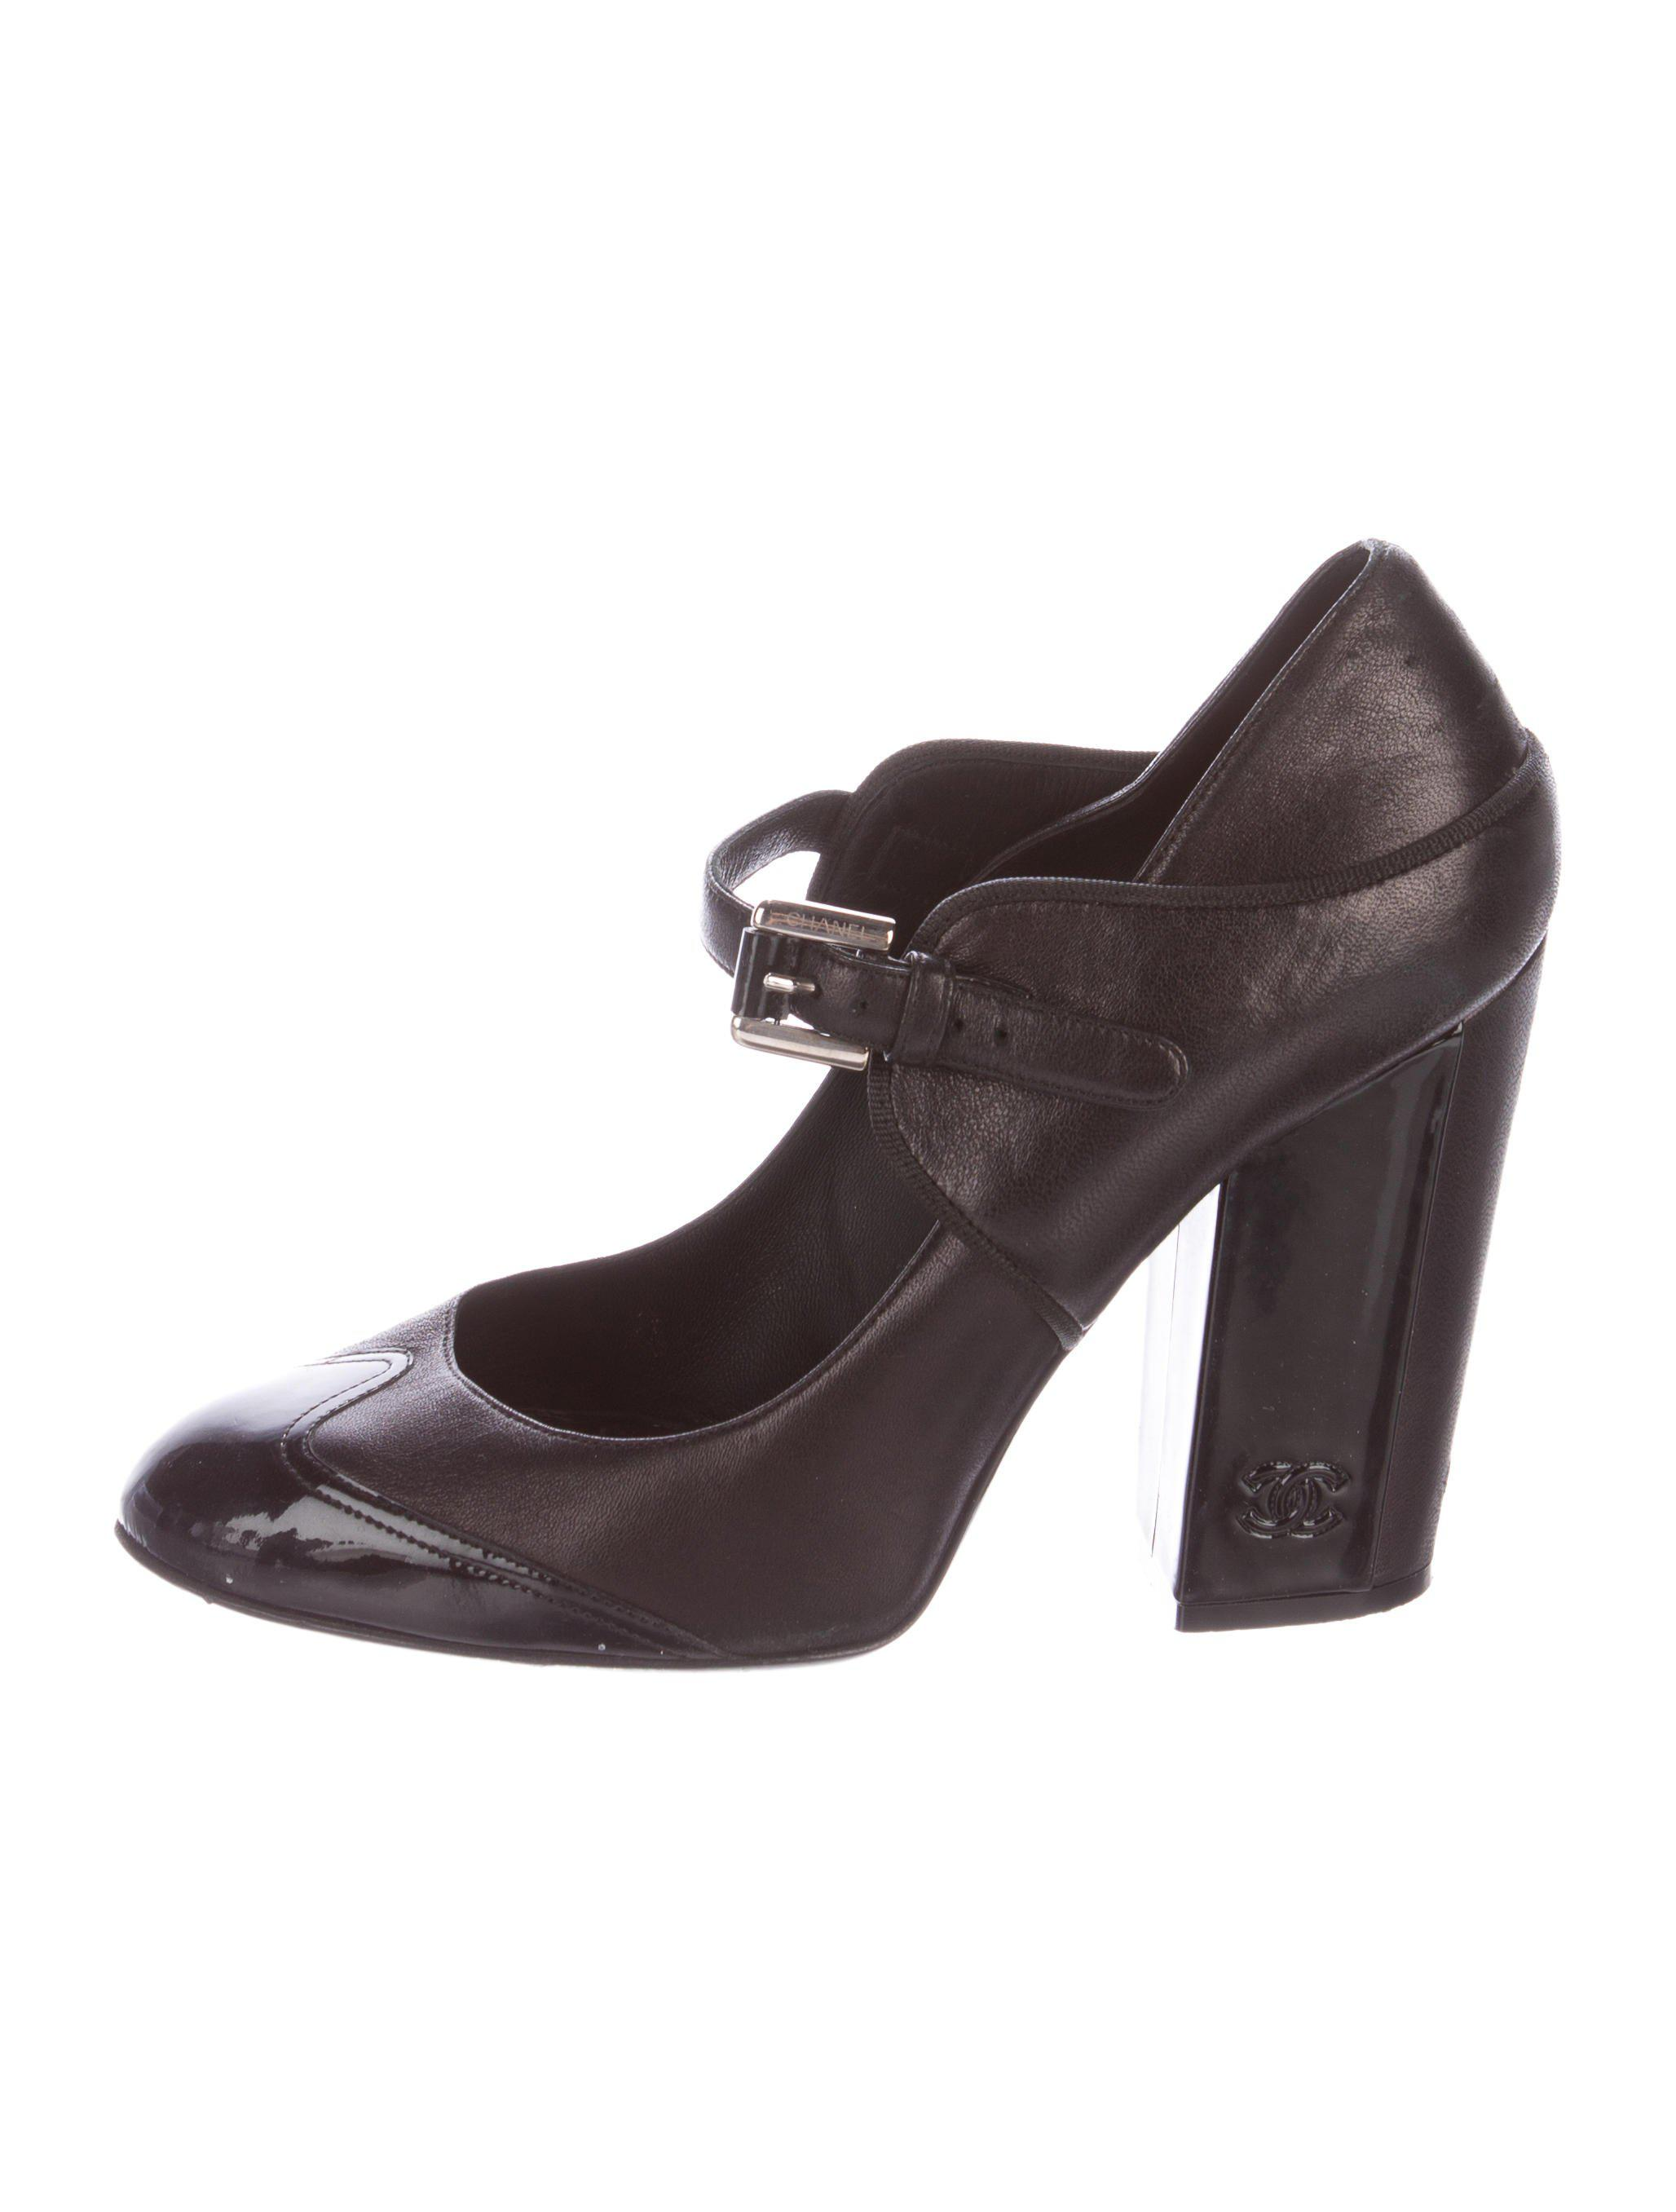 9a47528759c2 Gallery. Previously sold at  The RealReal · Women s Mary Jane Shoes